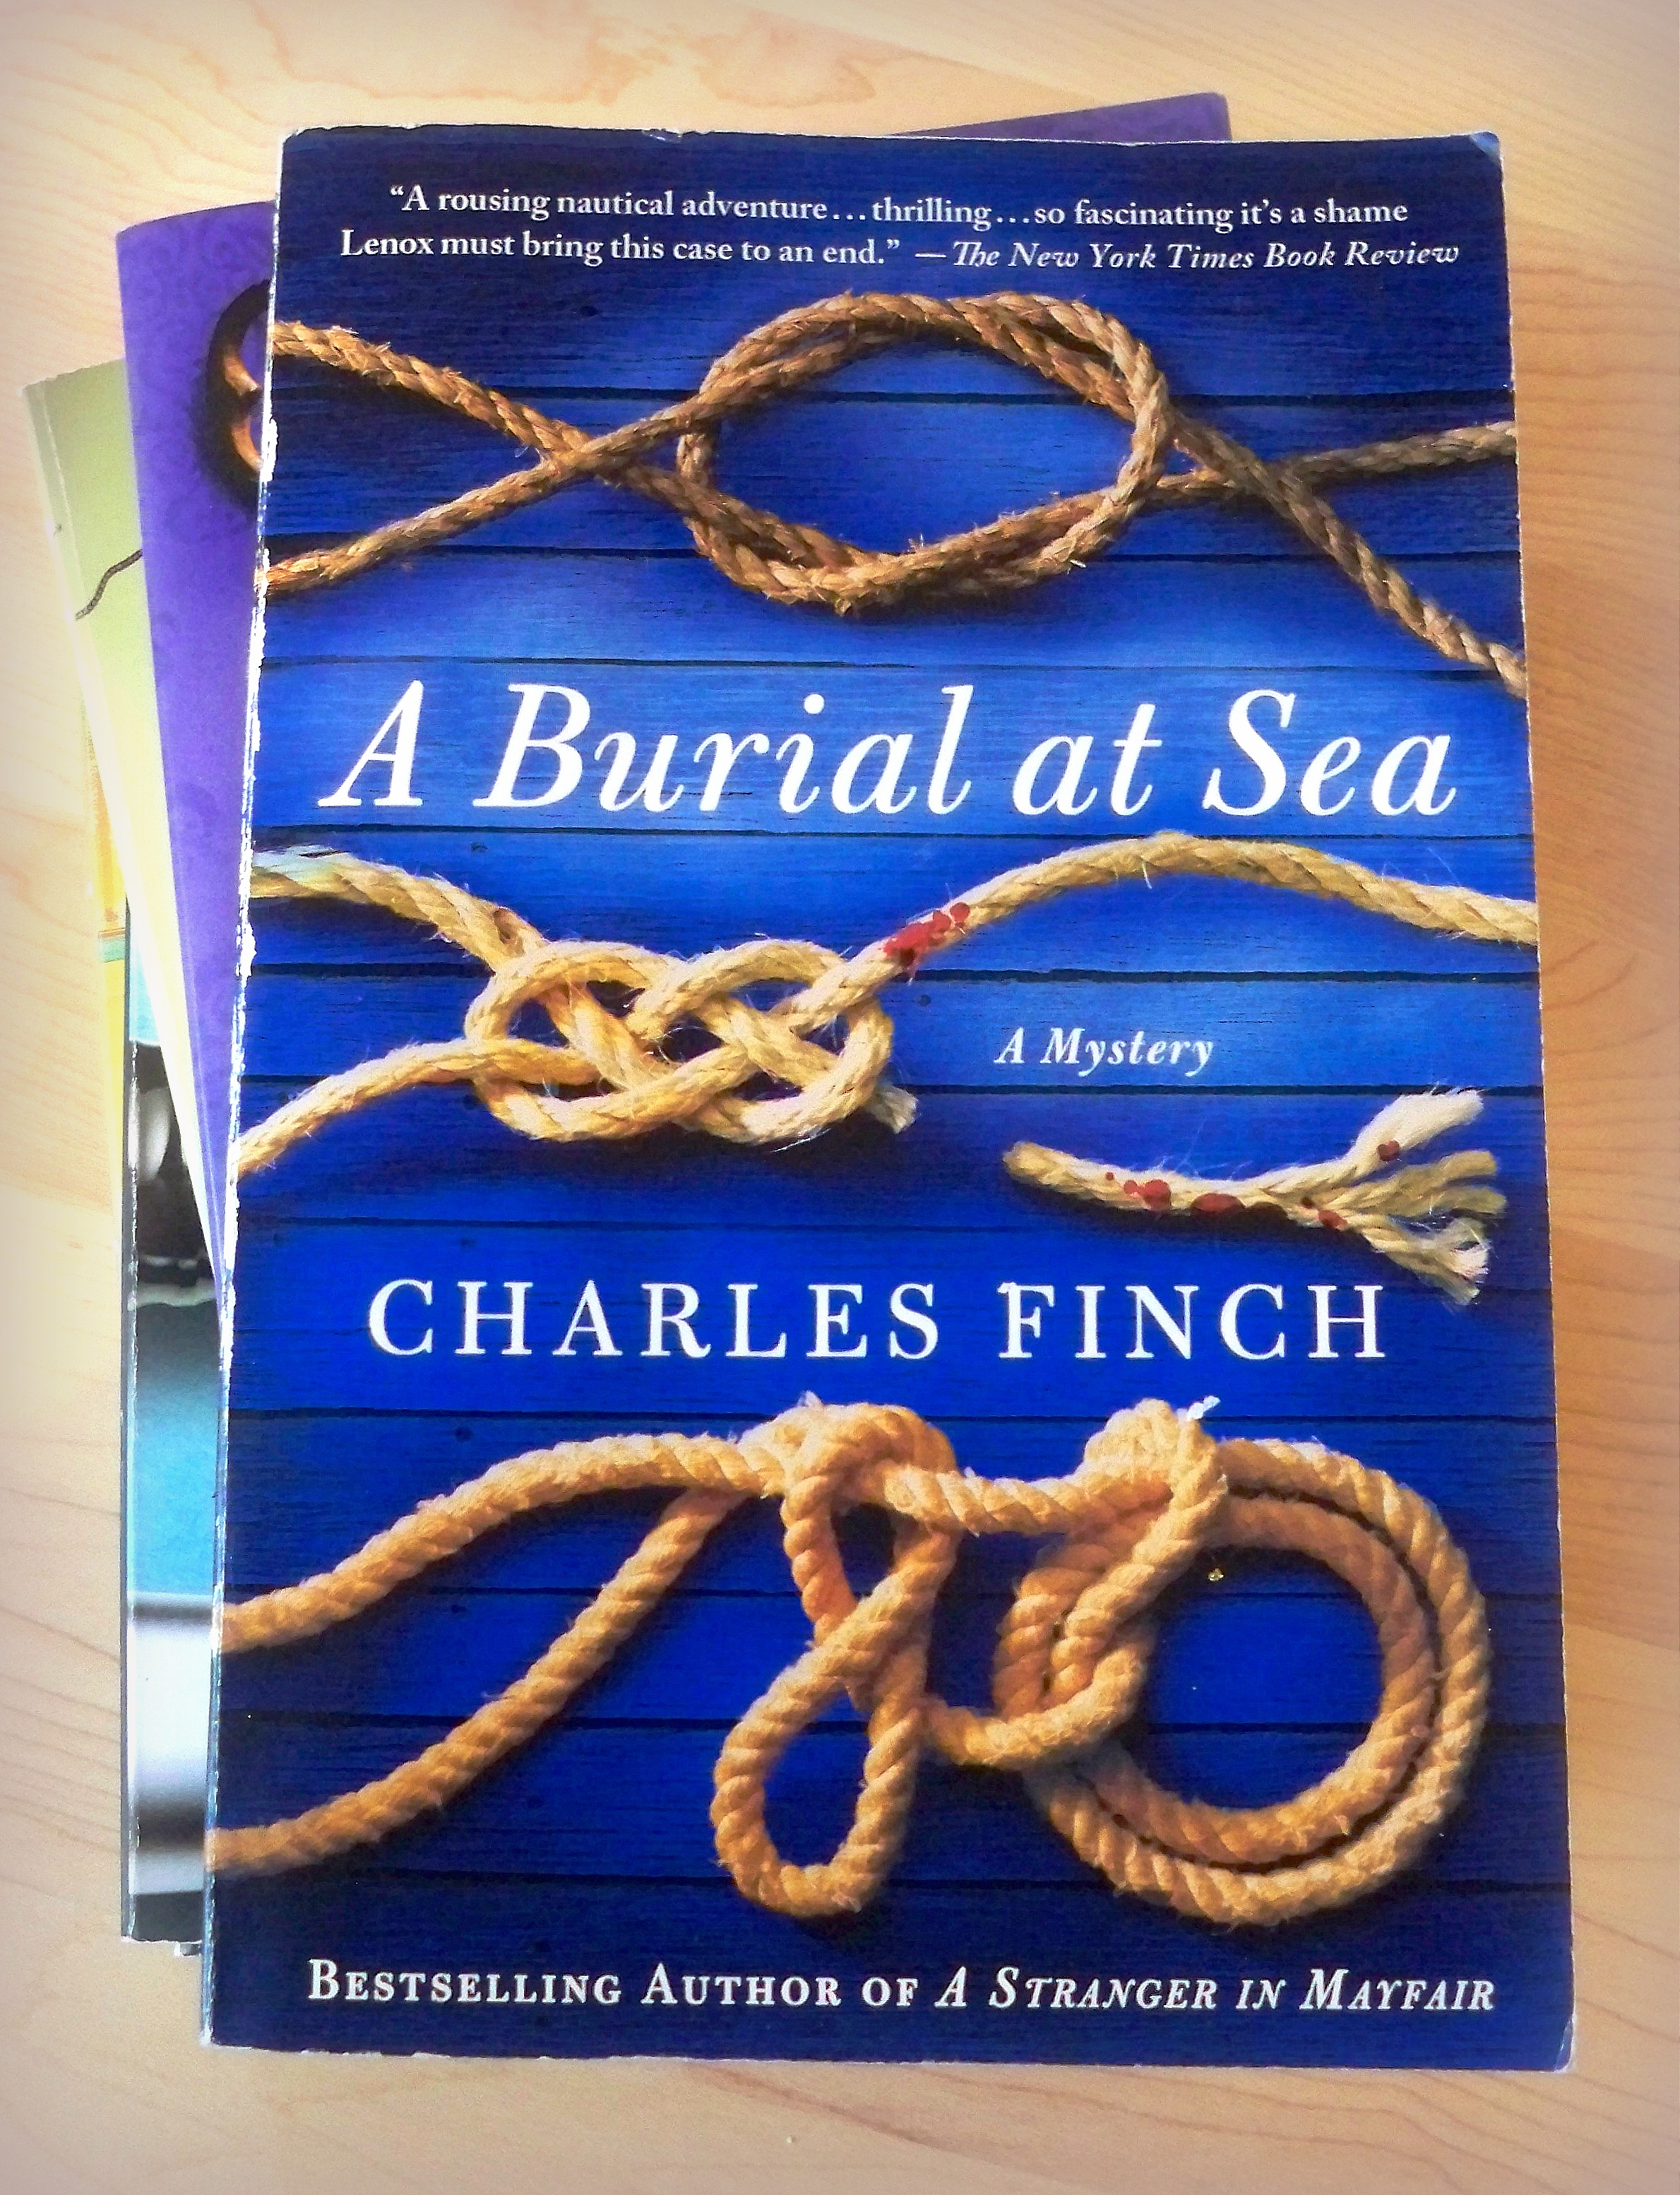 ~ a nautical Victorian era mystery...sort of Holmes or Poirot at sea :-) ~